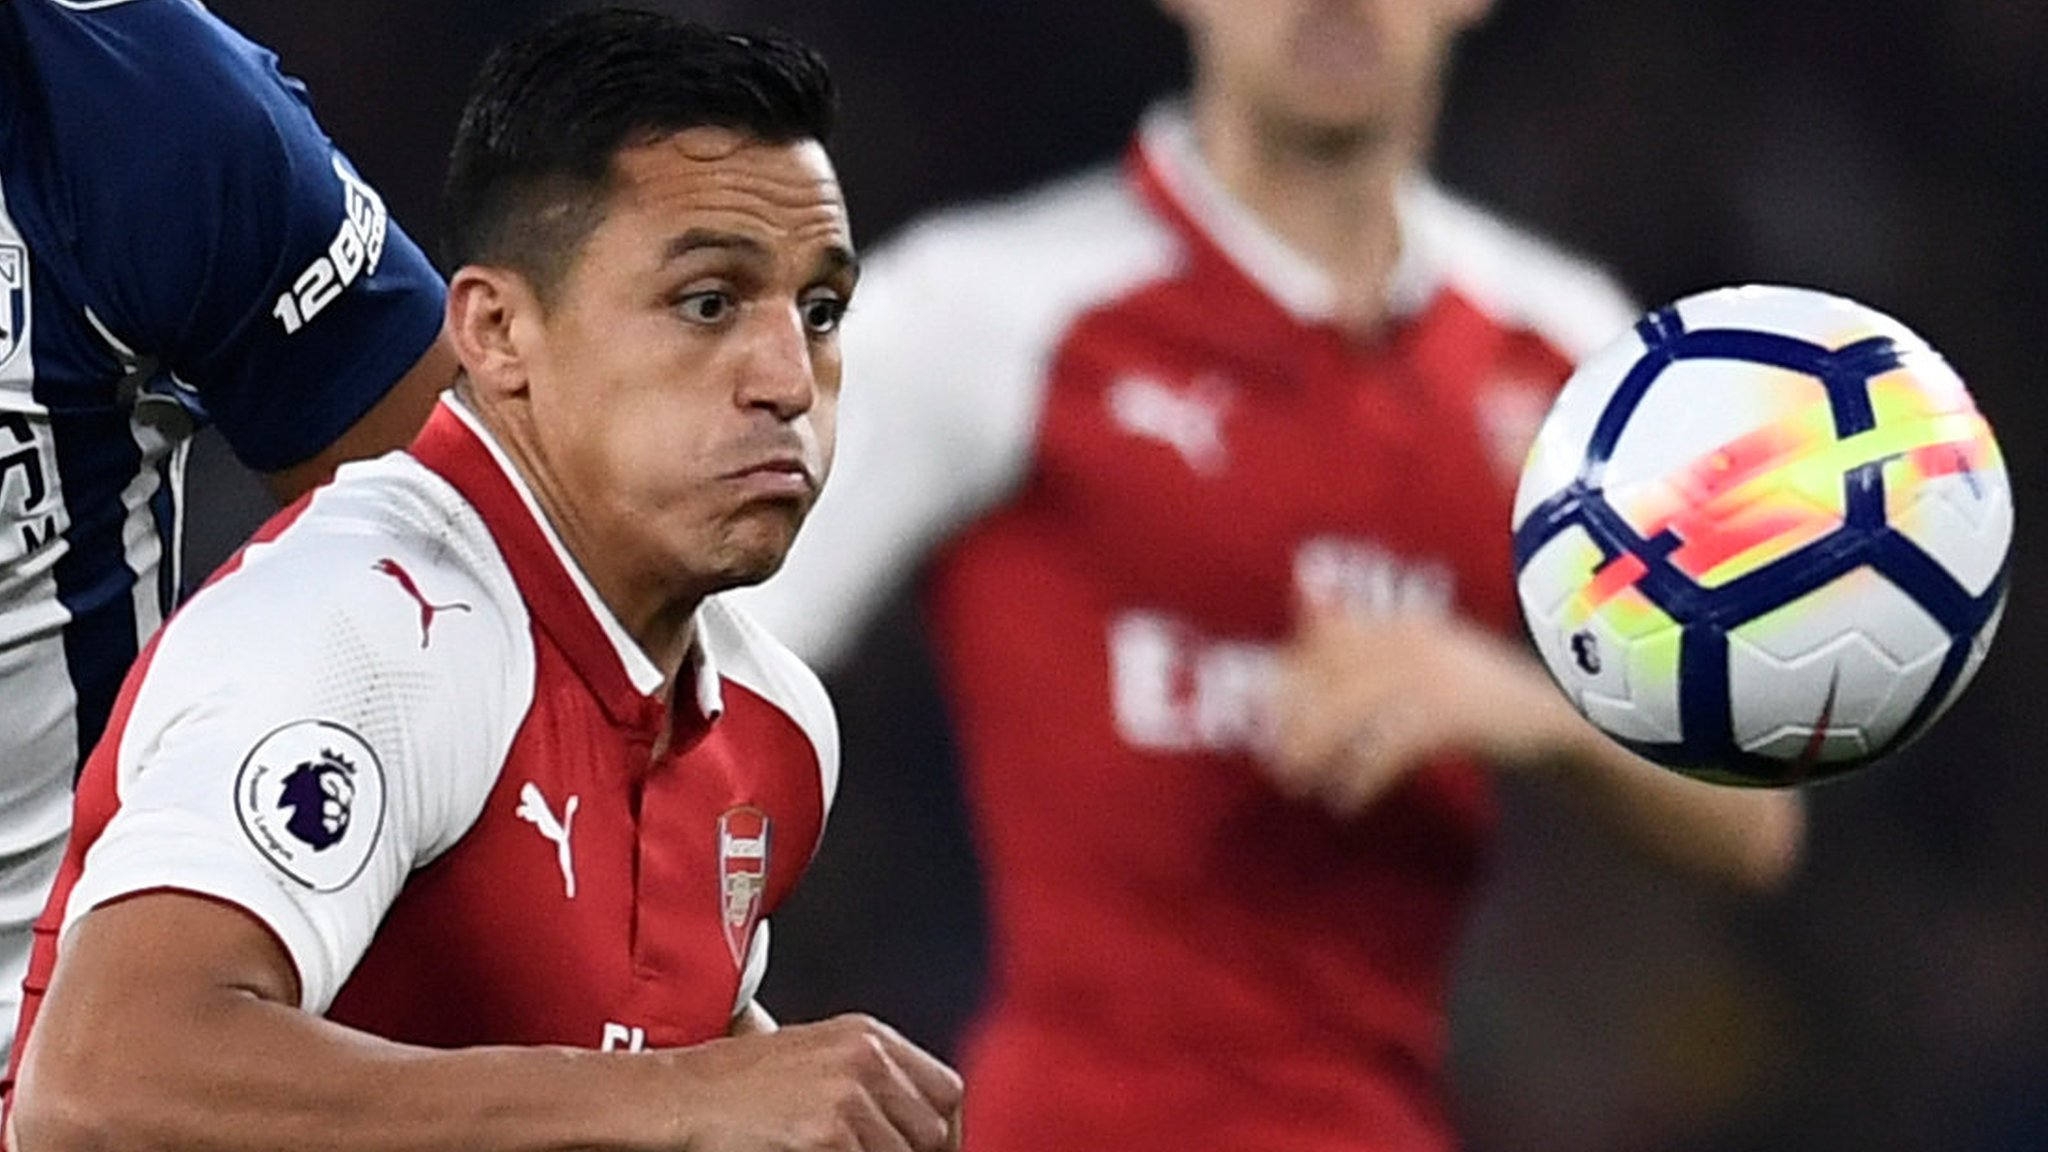 Pulis accuses Arsenal's Sanchez of cheating